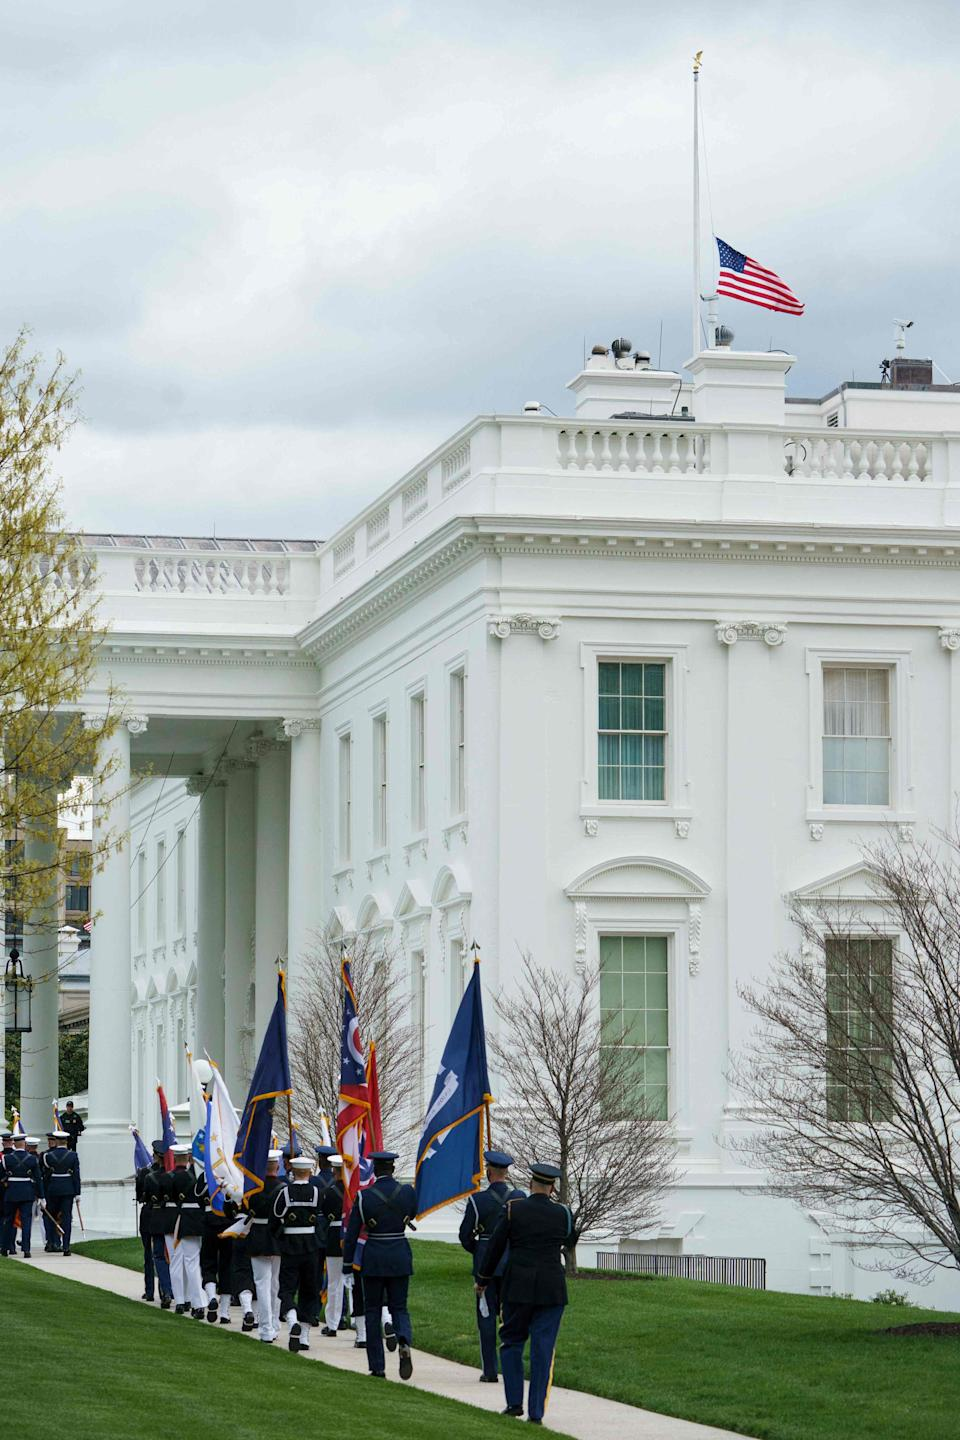 The flag above the White House flies at half staff in honor of the Indianapolis, Indiana shooting victims, in Washington, DC on April 16, 2021 as an honor guard setting up for the arrival for Japan's Prime Minister Yoshihide Suga is seen walking by.